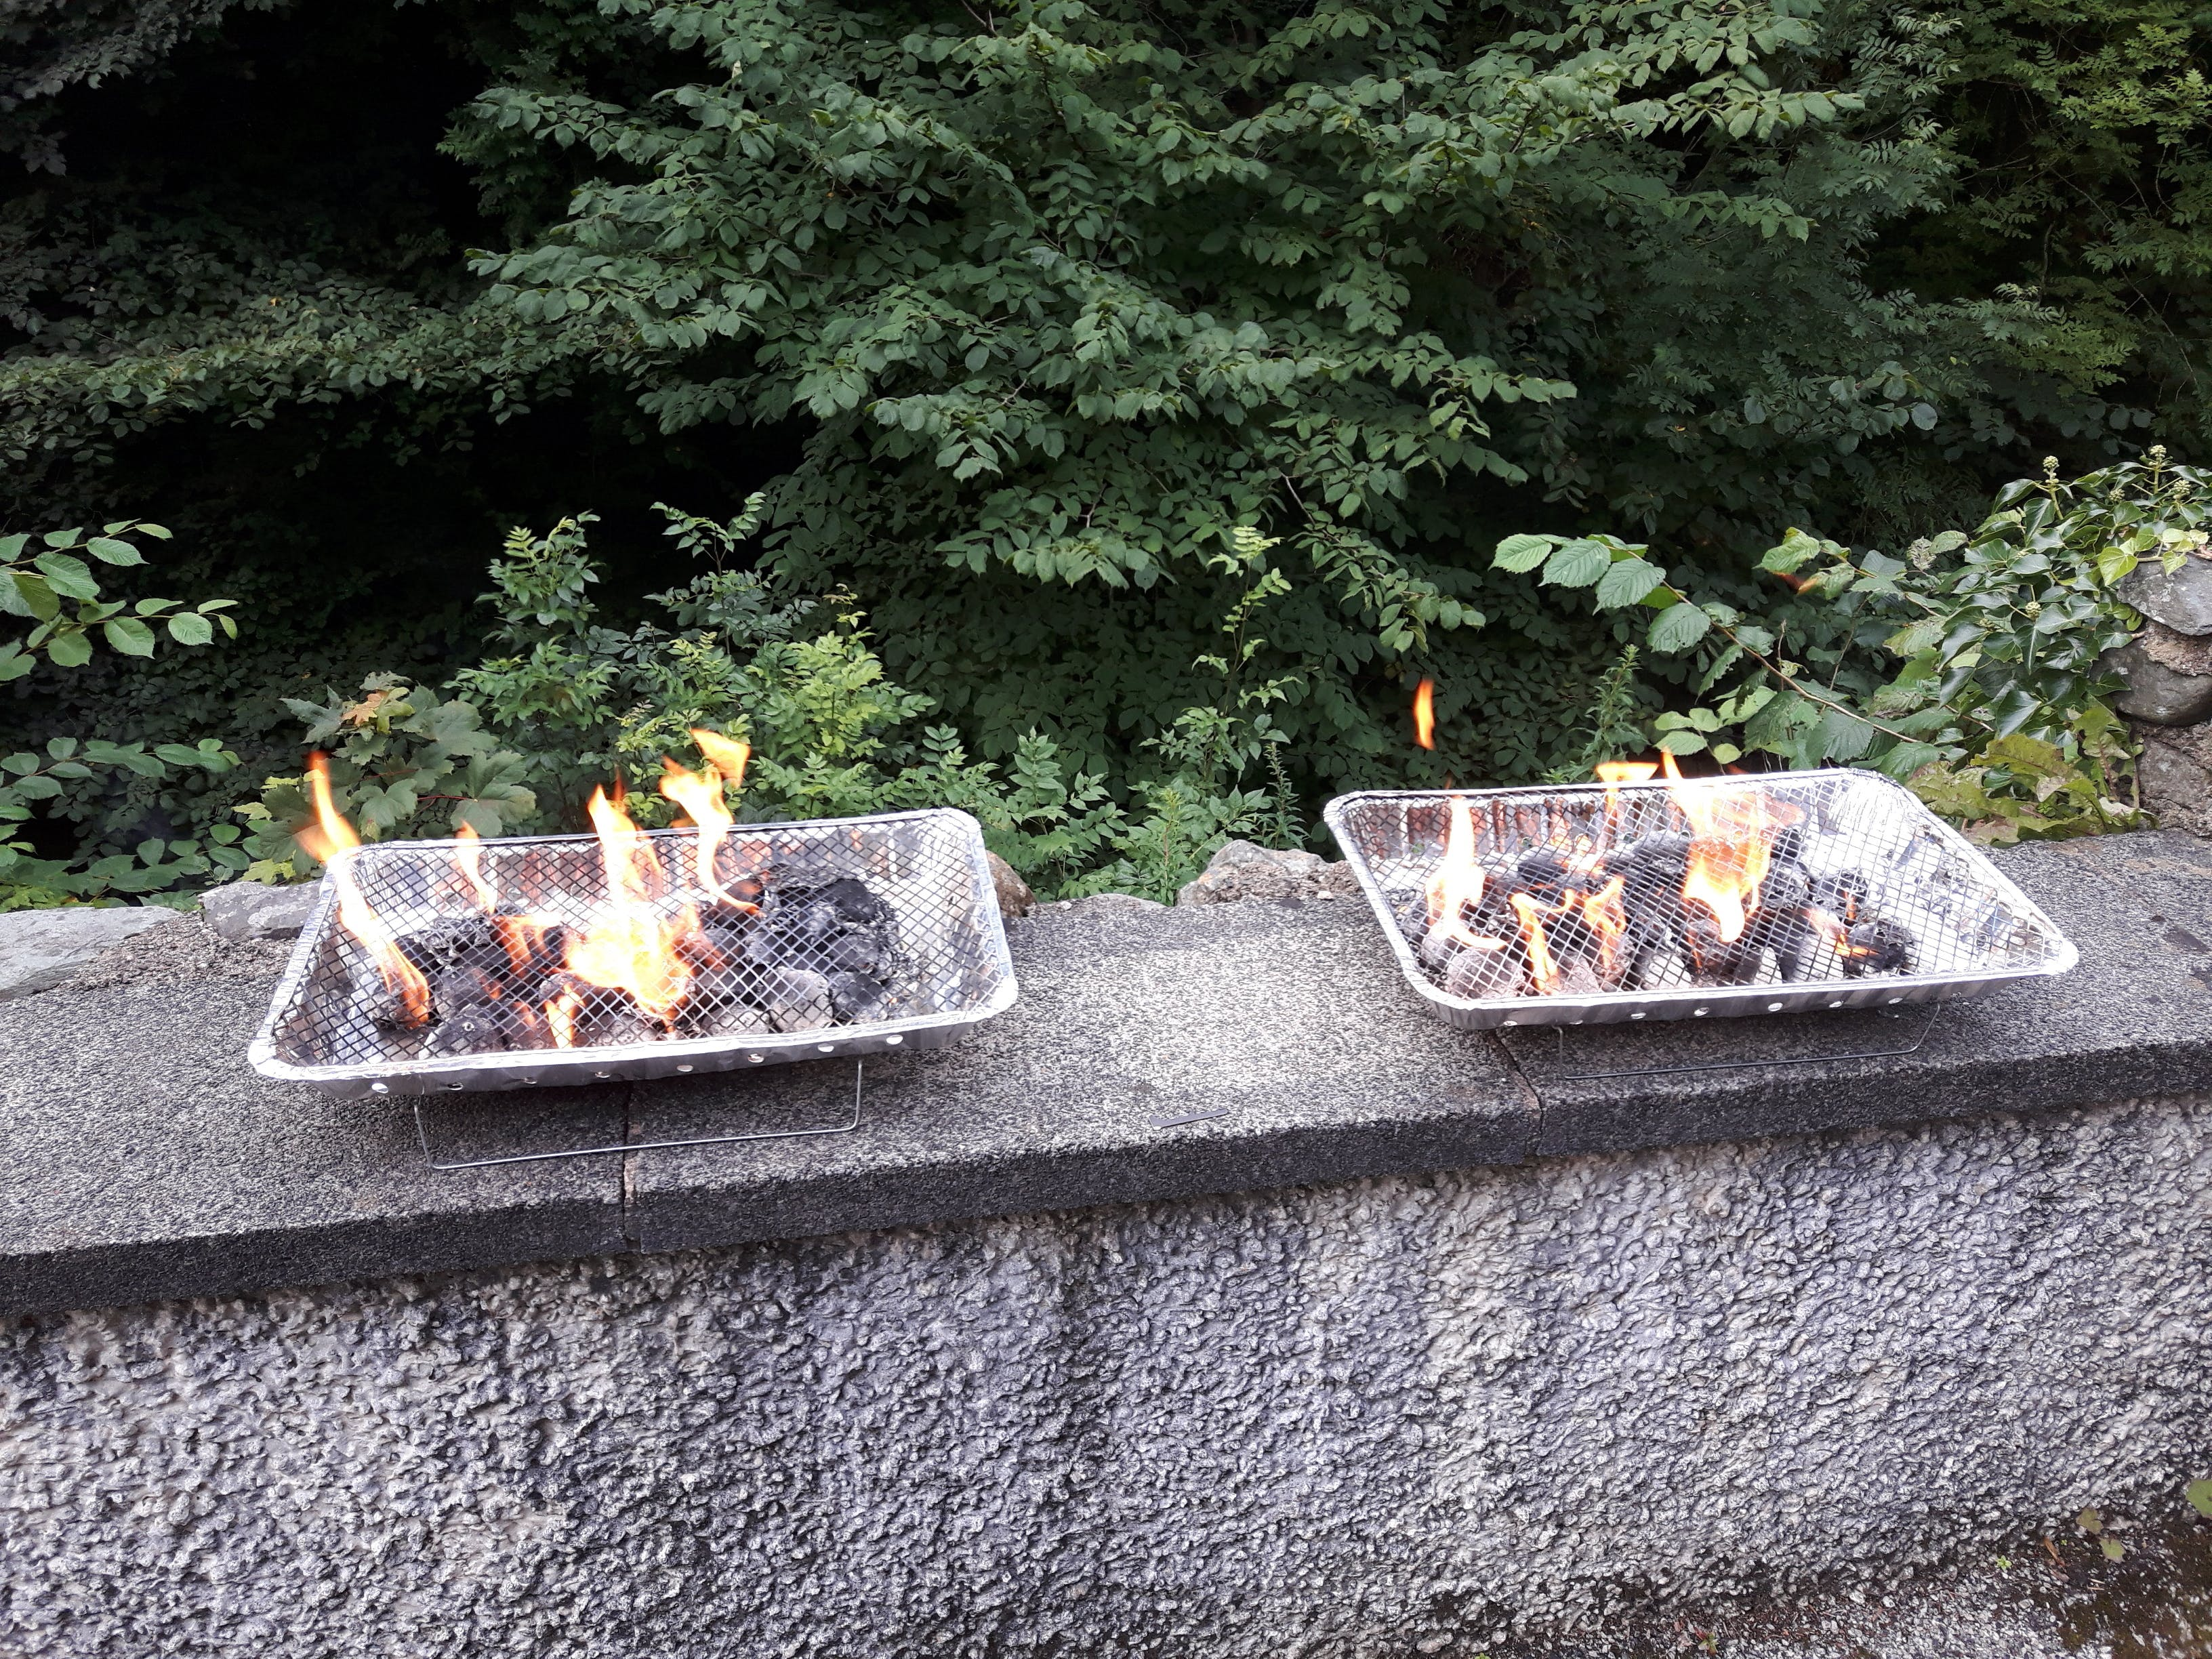 Free stock photo of barbecue, disposable barbecue, fire